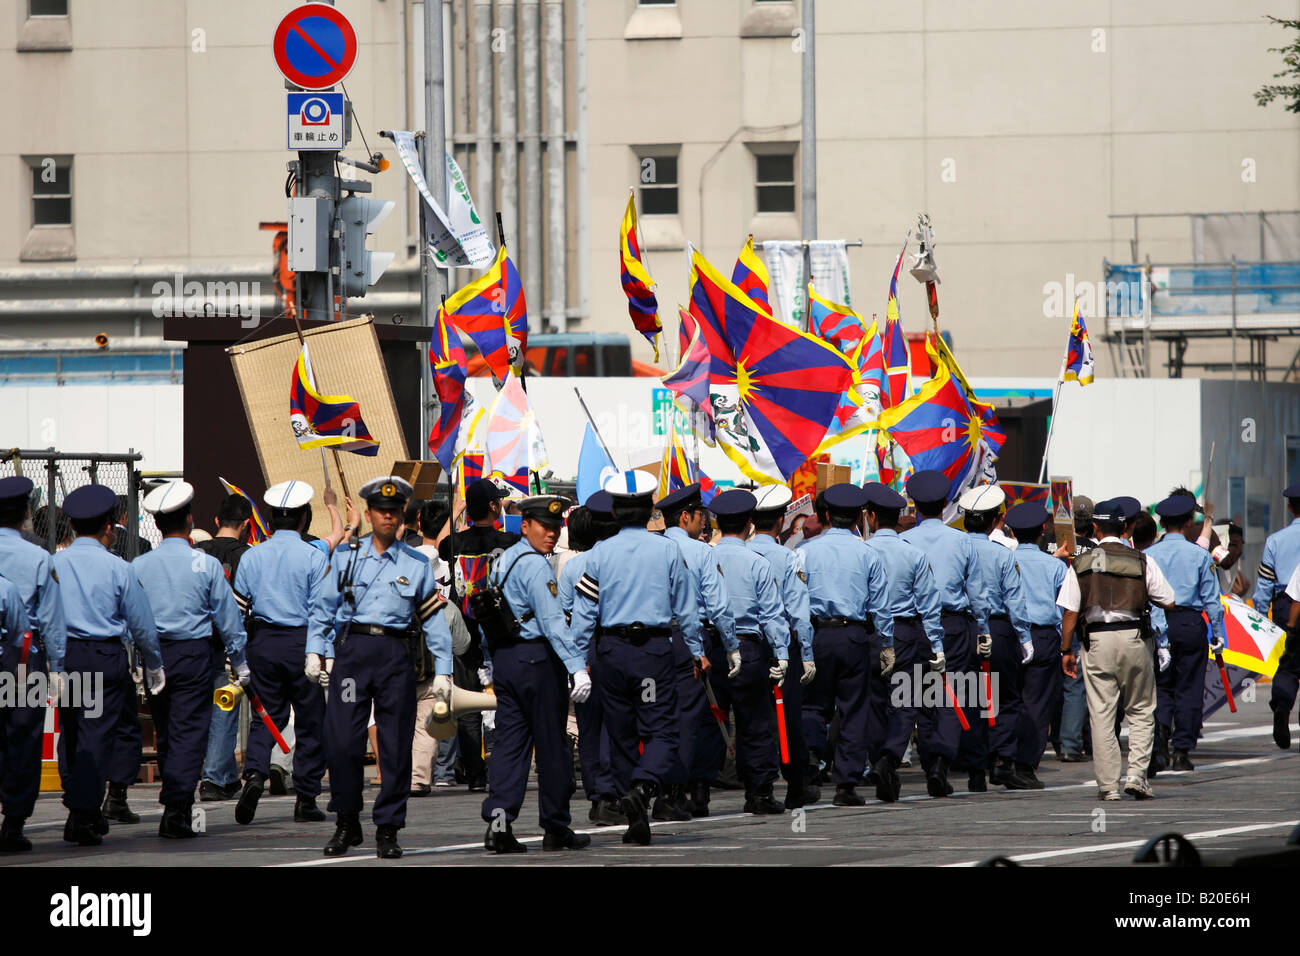 Heavily guarded Pro-Tibet demonstration during the G8 summit in Sapporo, Japan. Stock Photo